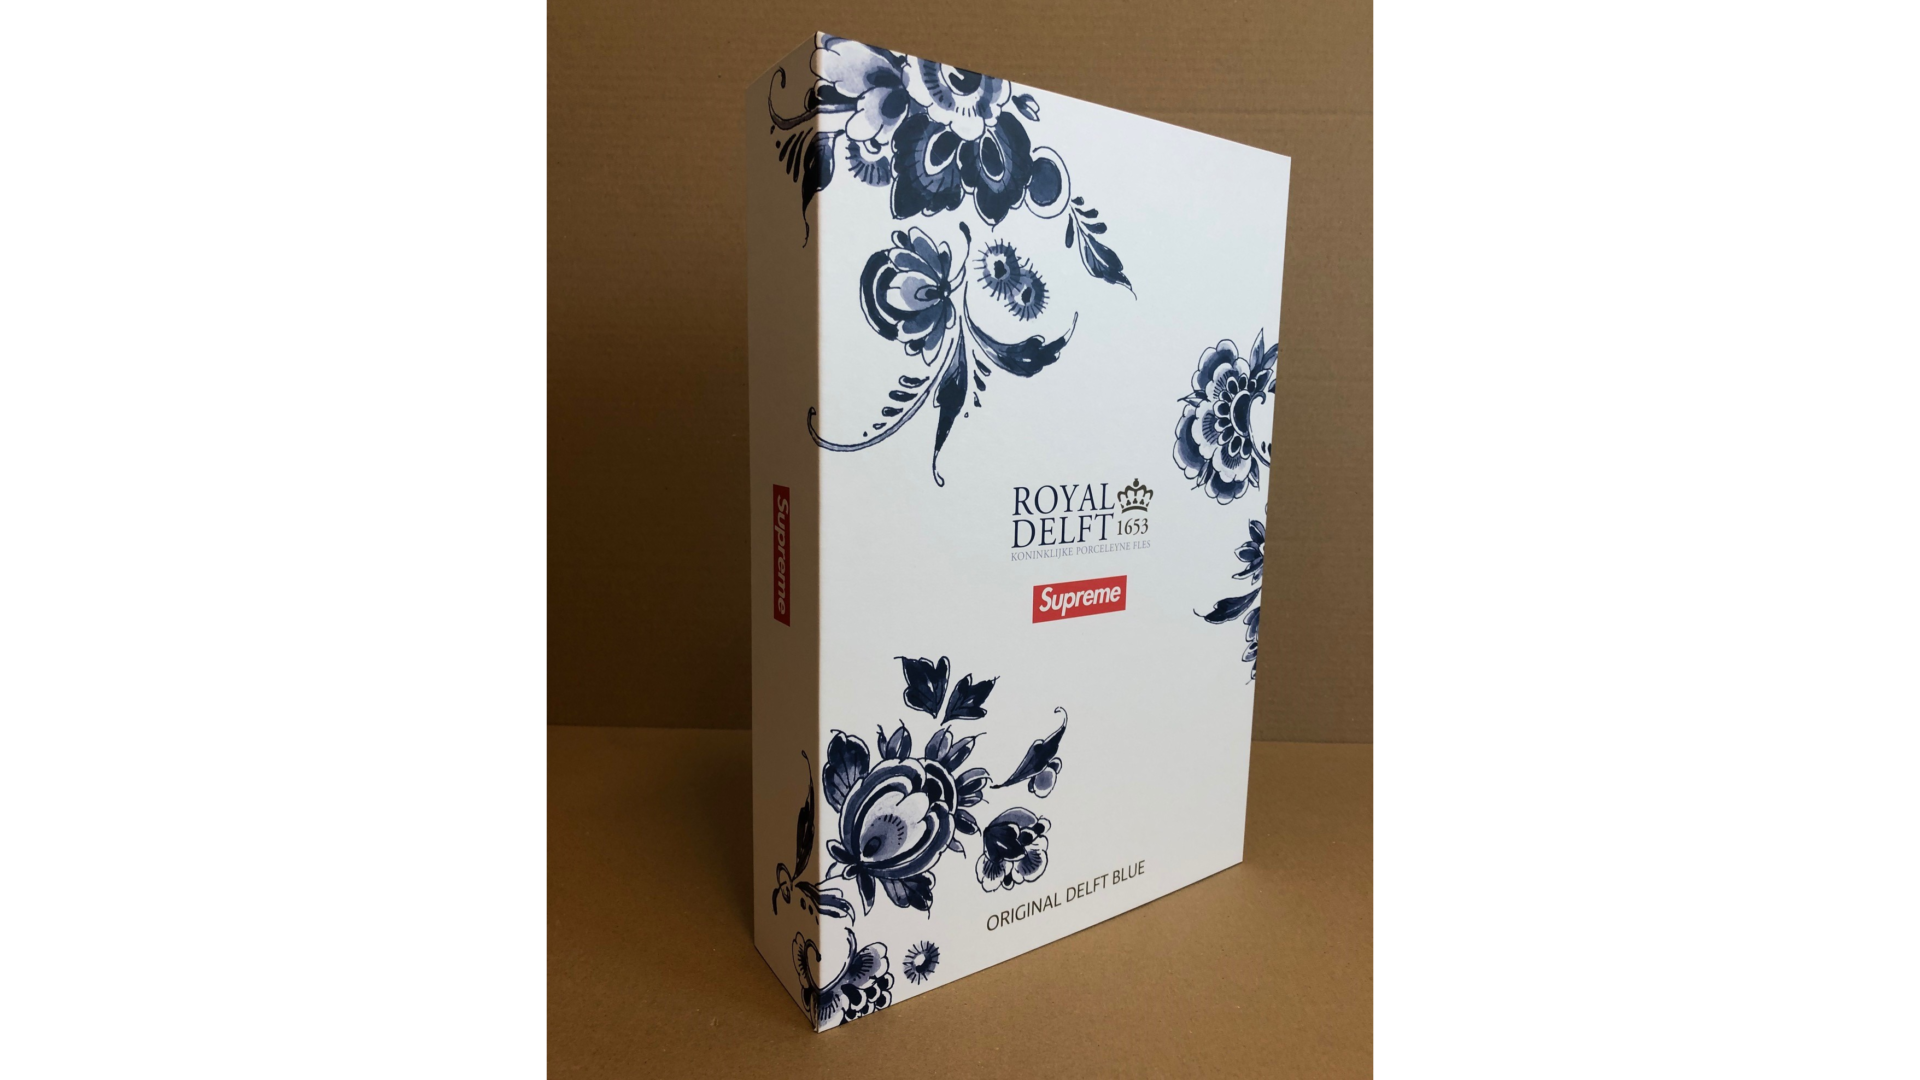 Luxury packaging for Royal Delft & Supreme